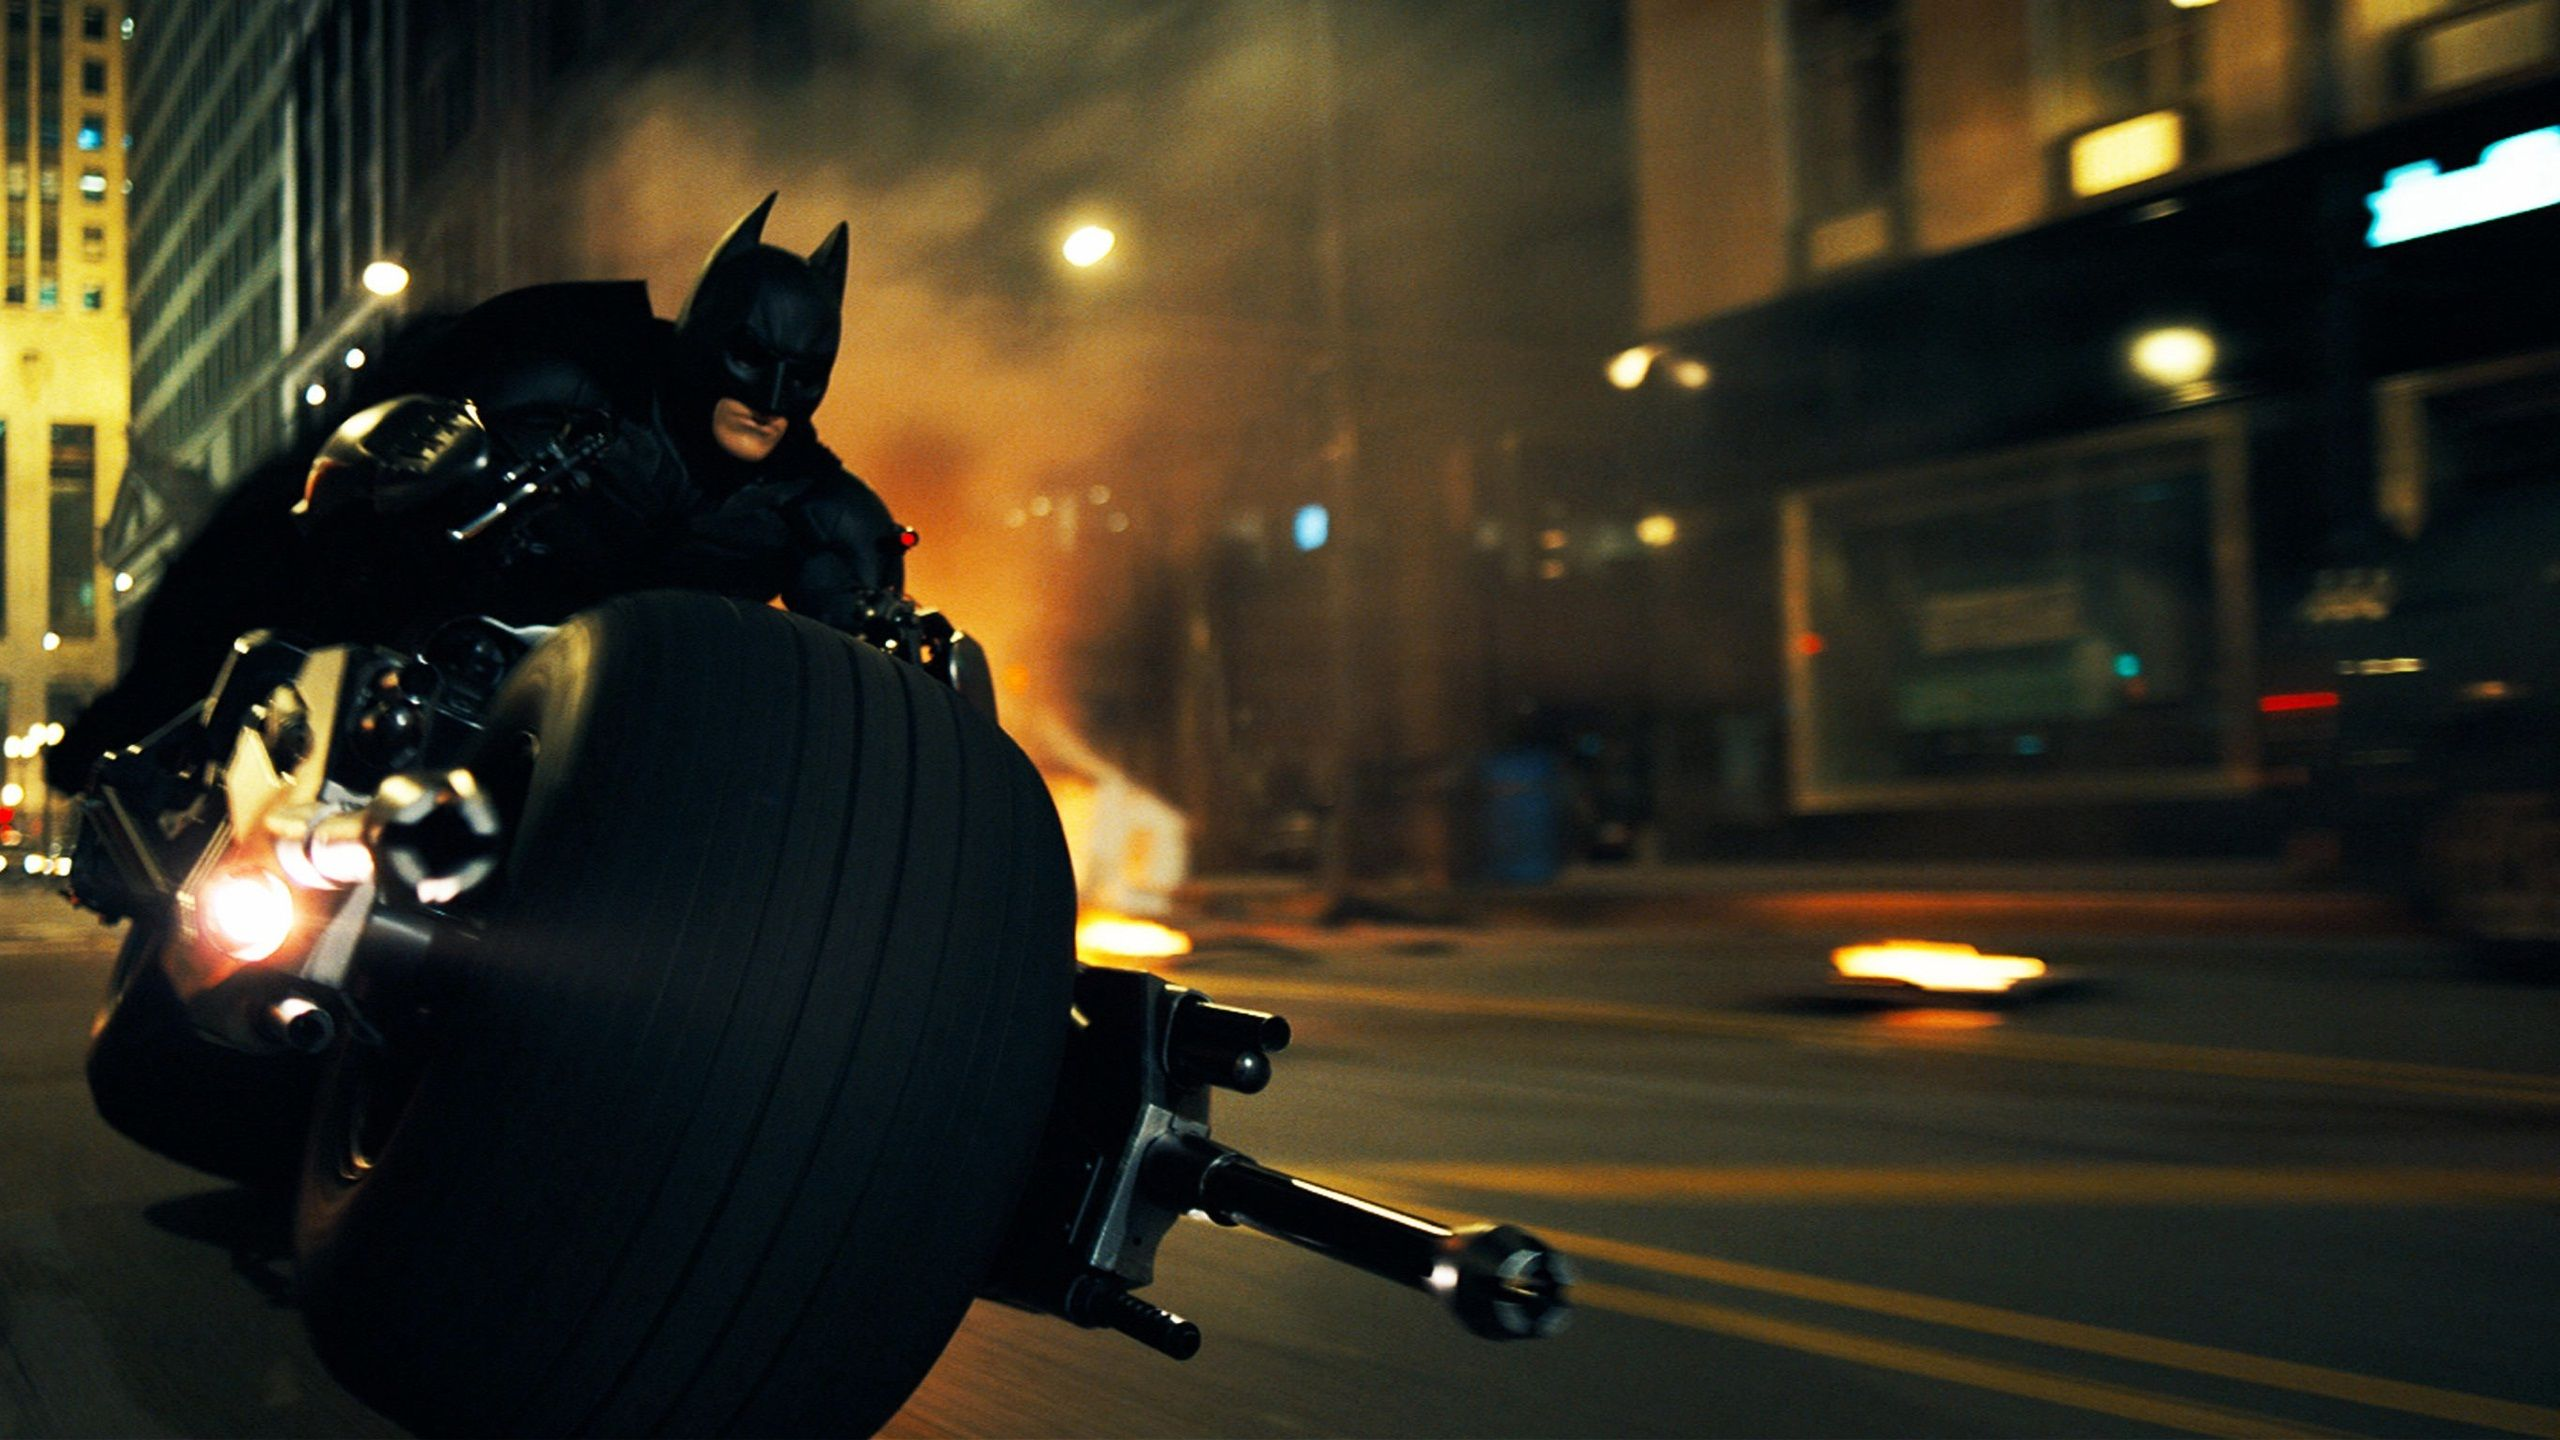 Dark Knight HD Wallpapers   Top Dark Knight HD Backgrounds 2560x1440